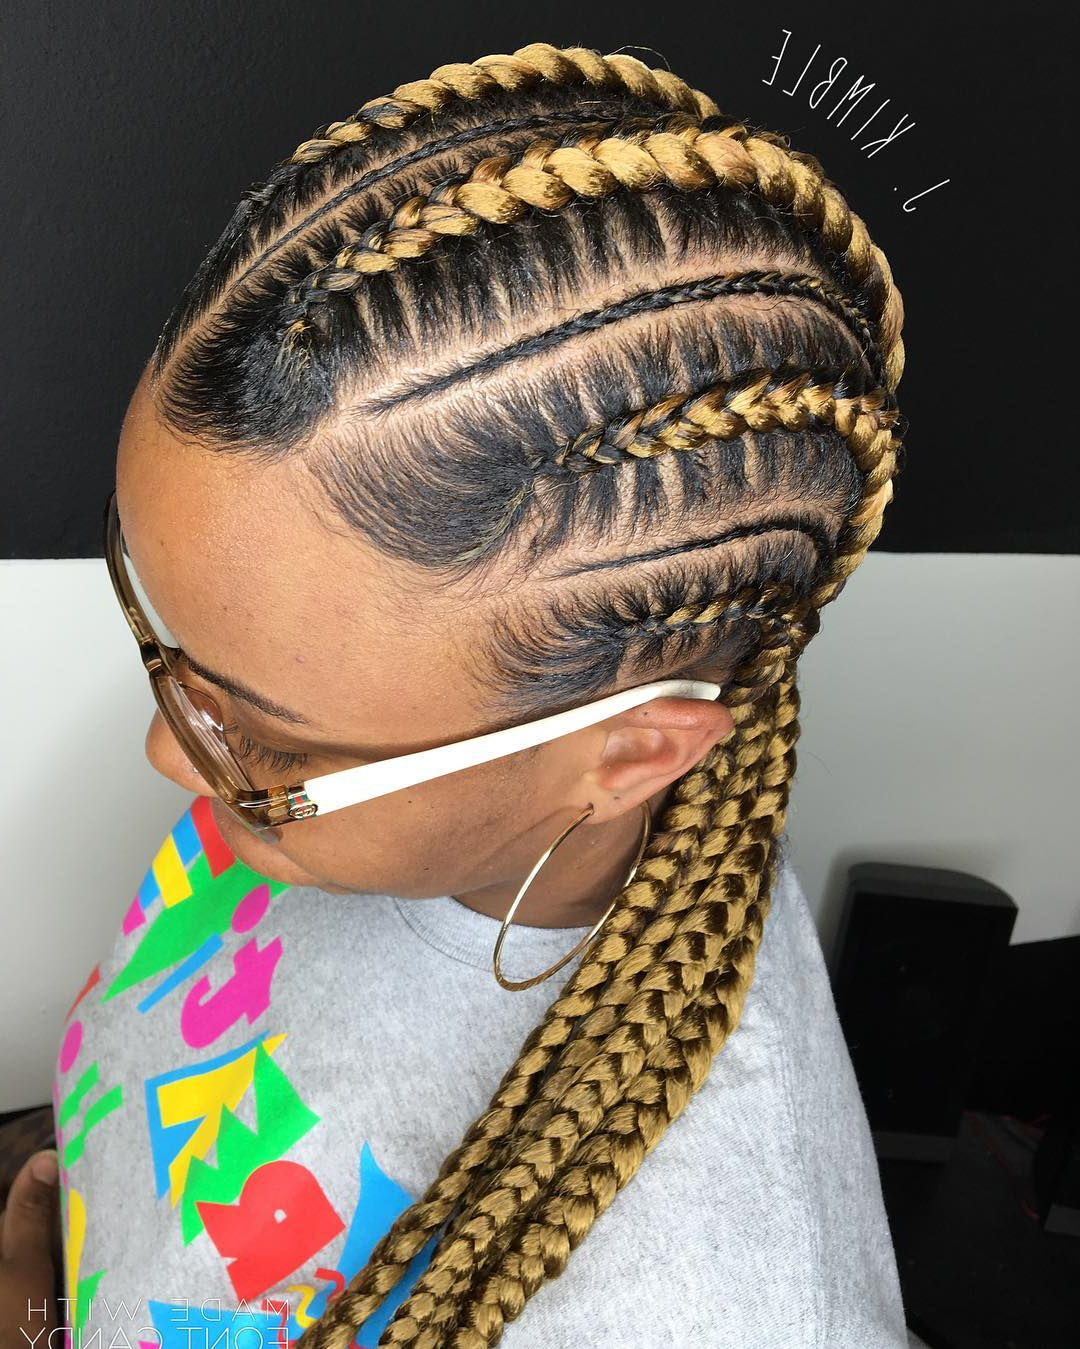 2019 Stylishly Swept Back Braid Hairstyles Throughout 70 Best Black Braided Hairstyles That Turn Heads In  (View 2 of 20)